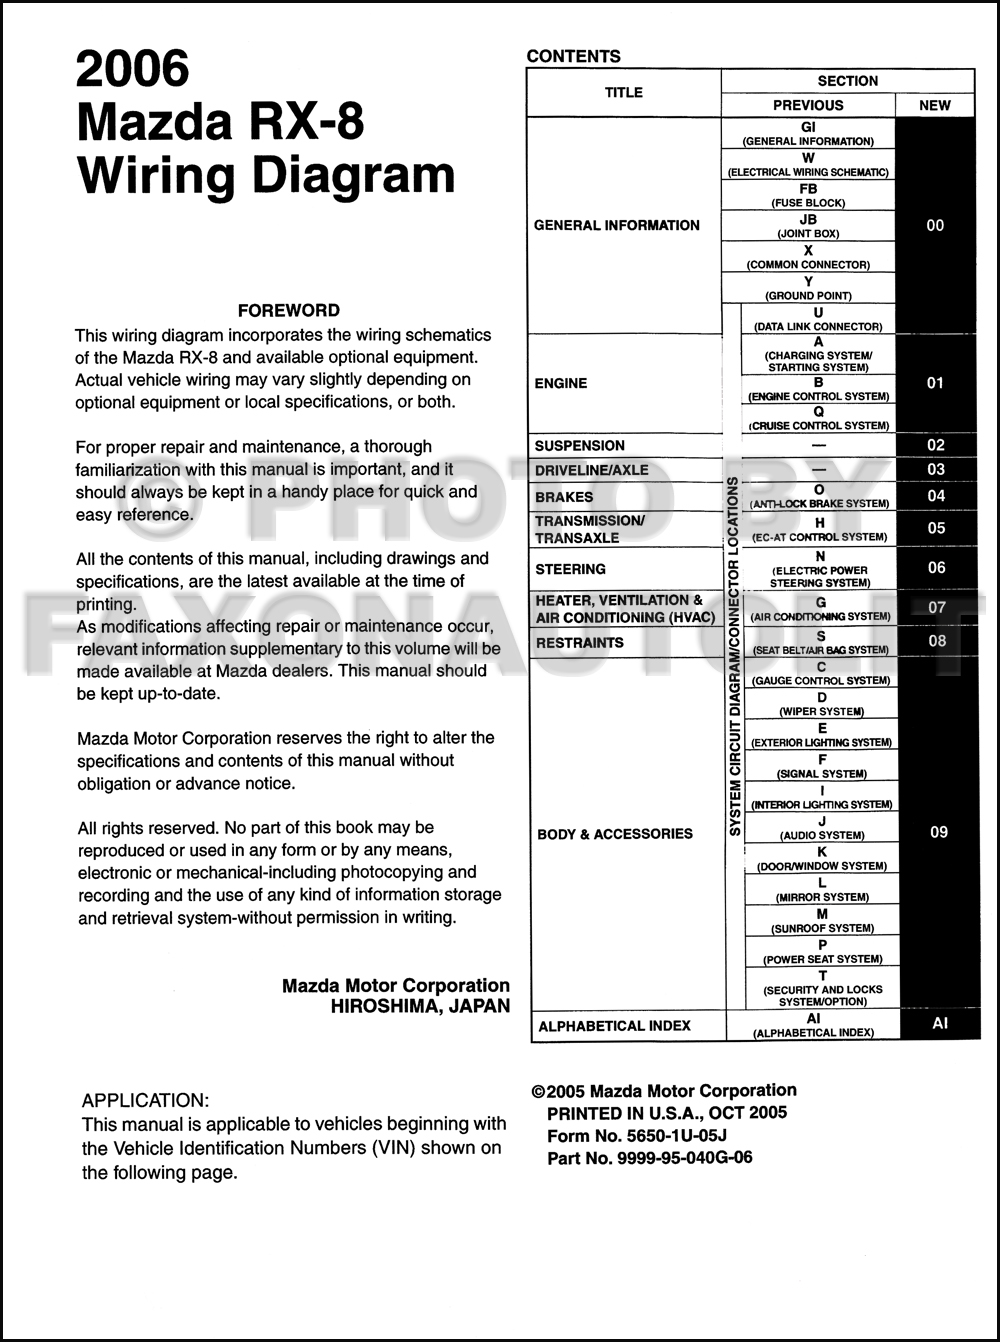 1928 model a wiring diagram